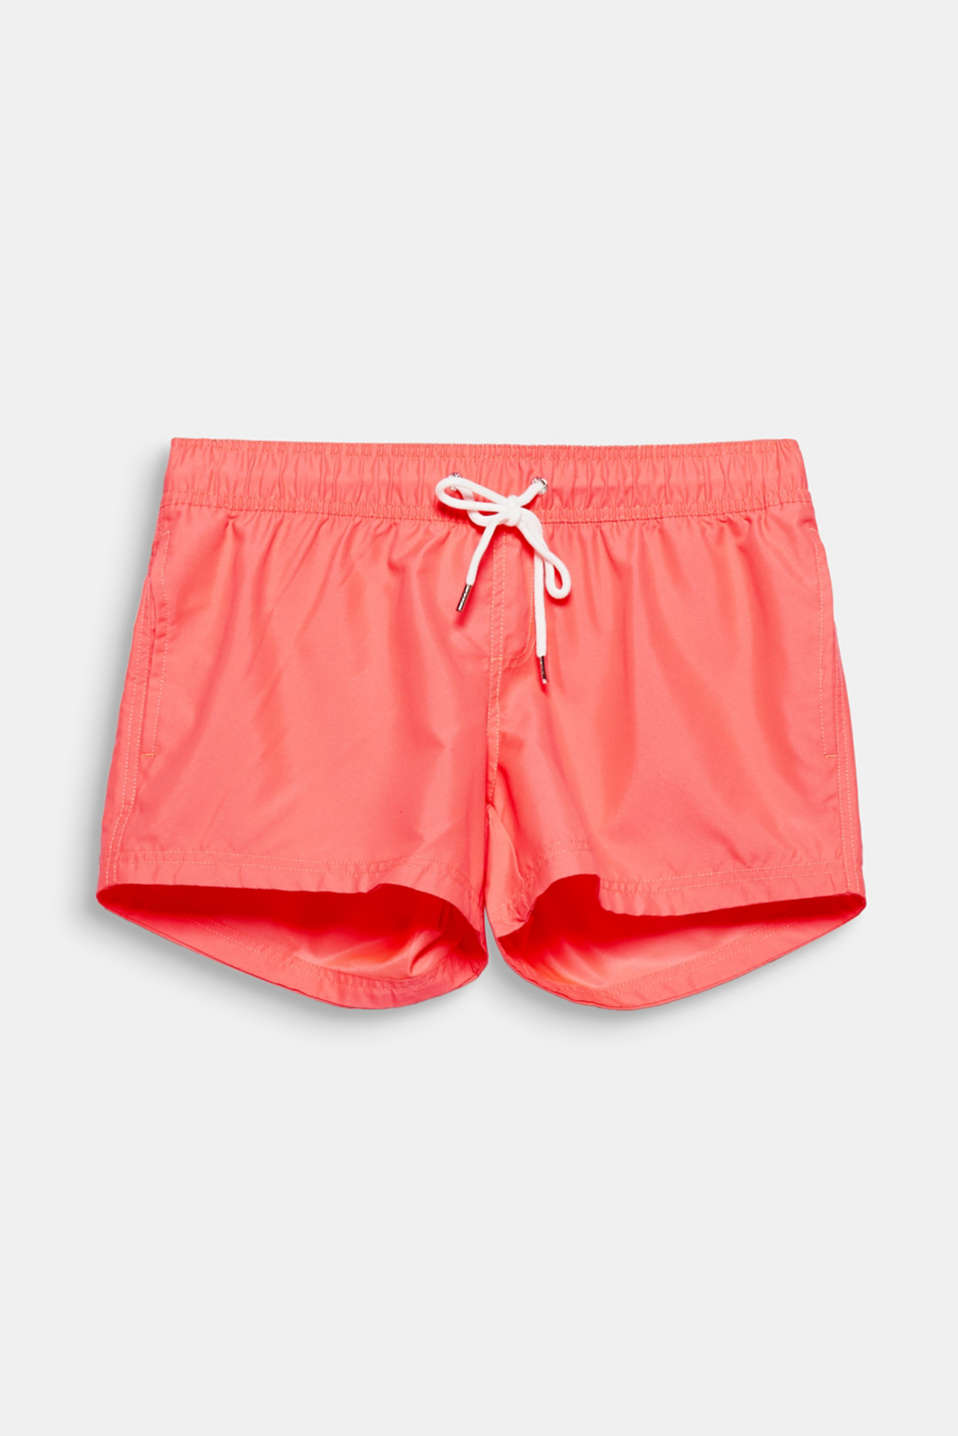 These simple shorts with an elasticated waistband and side slit pockets are perfect for time off and holidays!